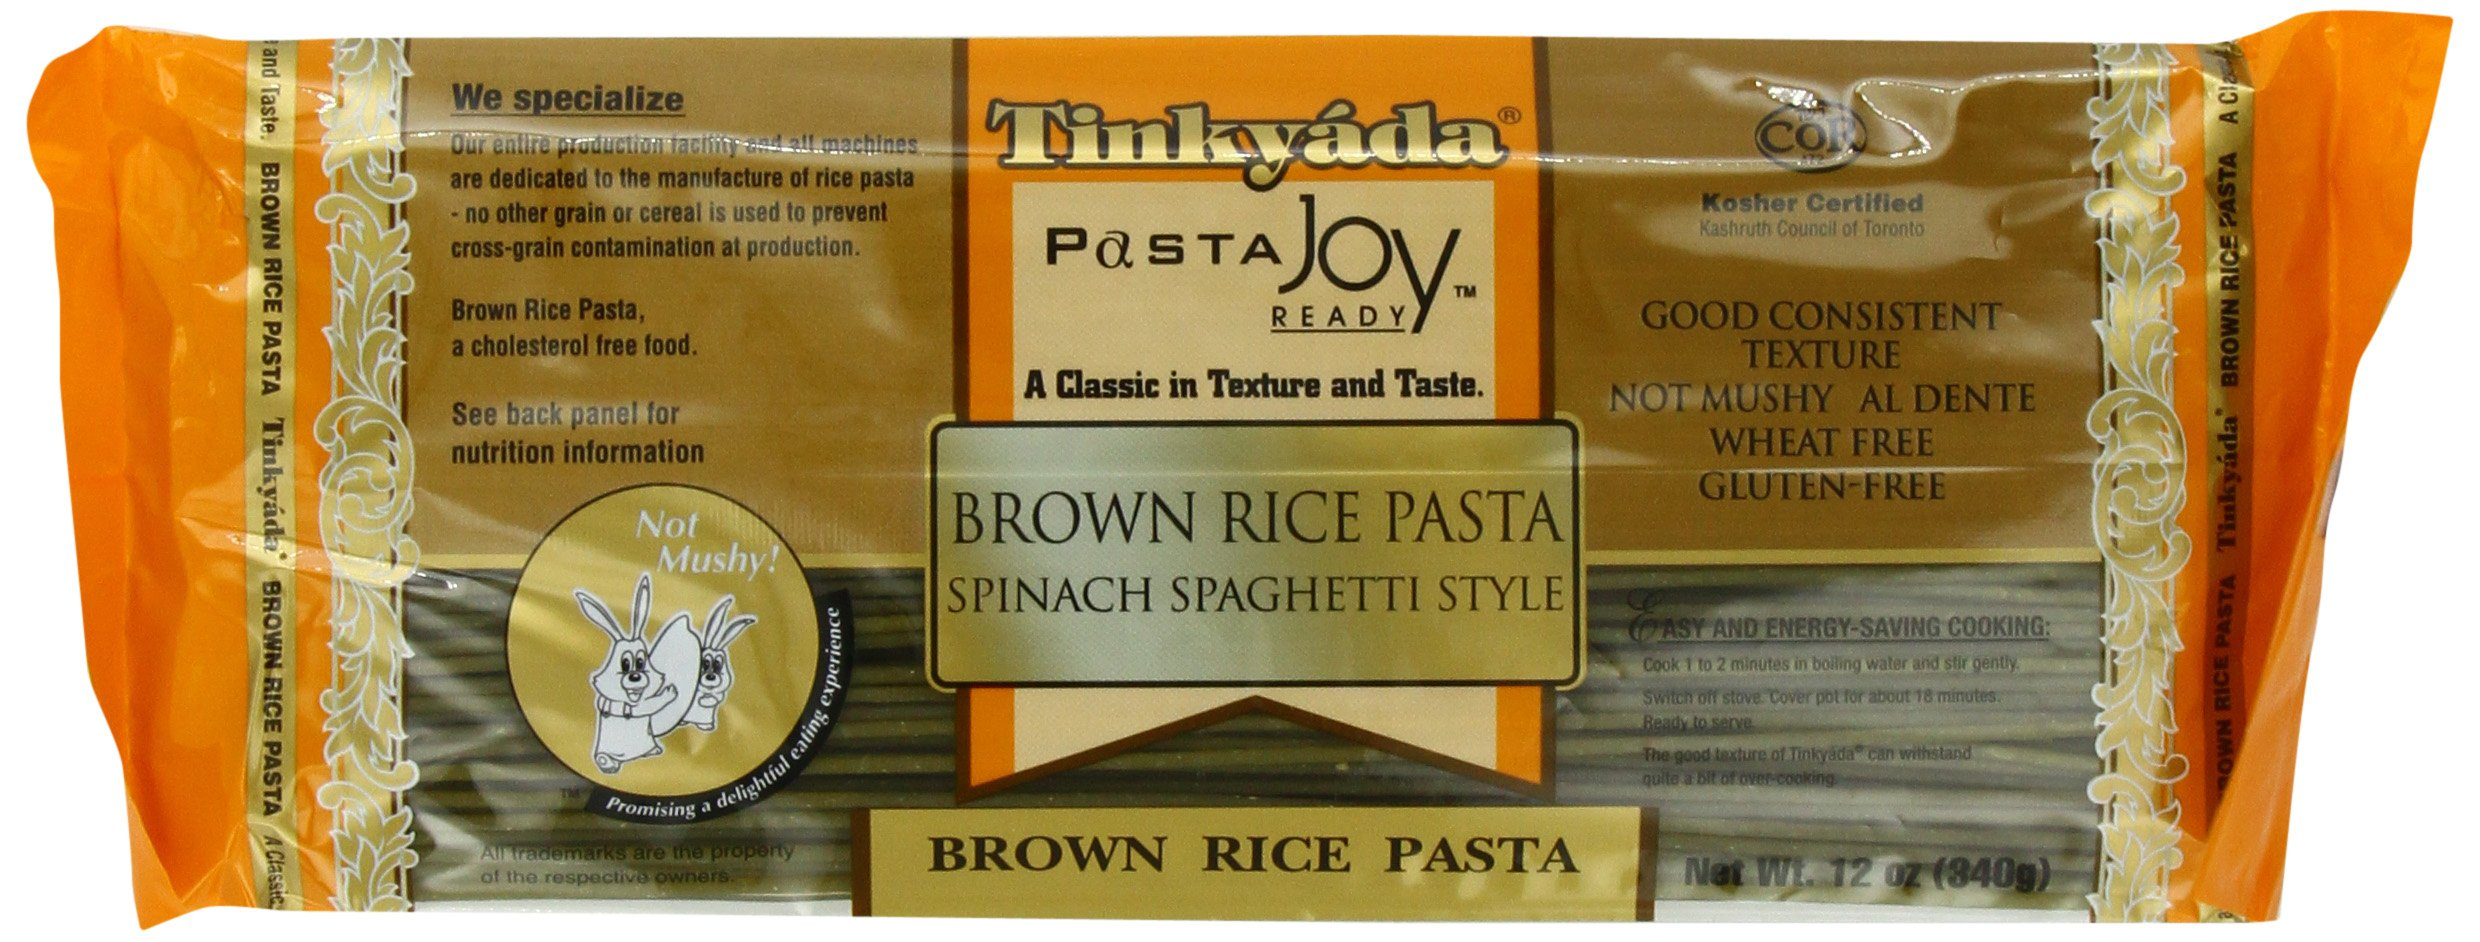 Tinkyada Brown Rice Pasta, Spaghetti with Spinach, 12 Ounce (Pack of 12) by Tinkyada